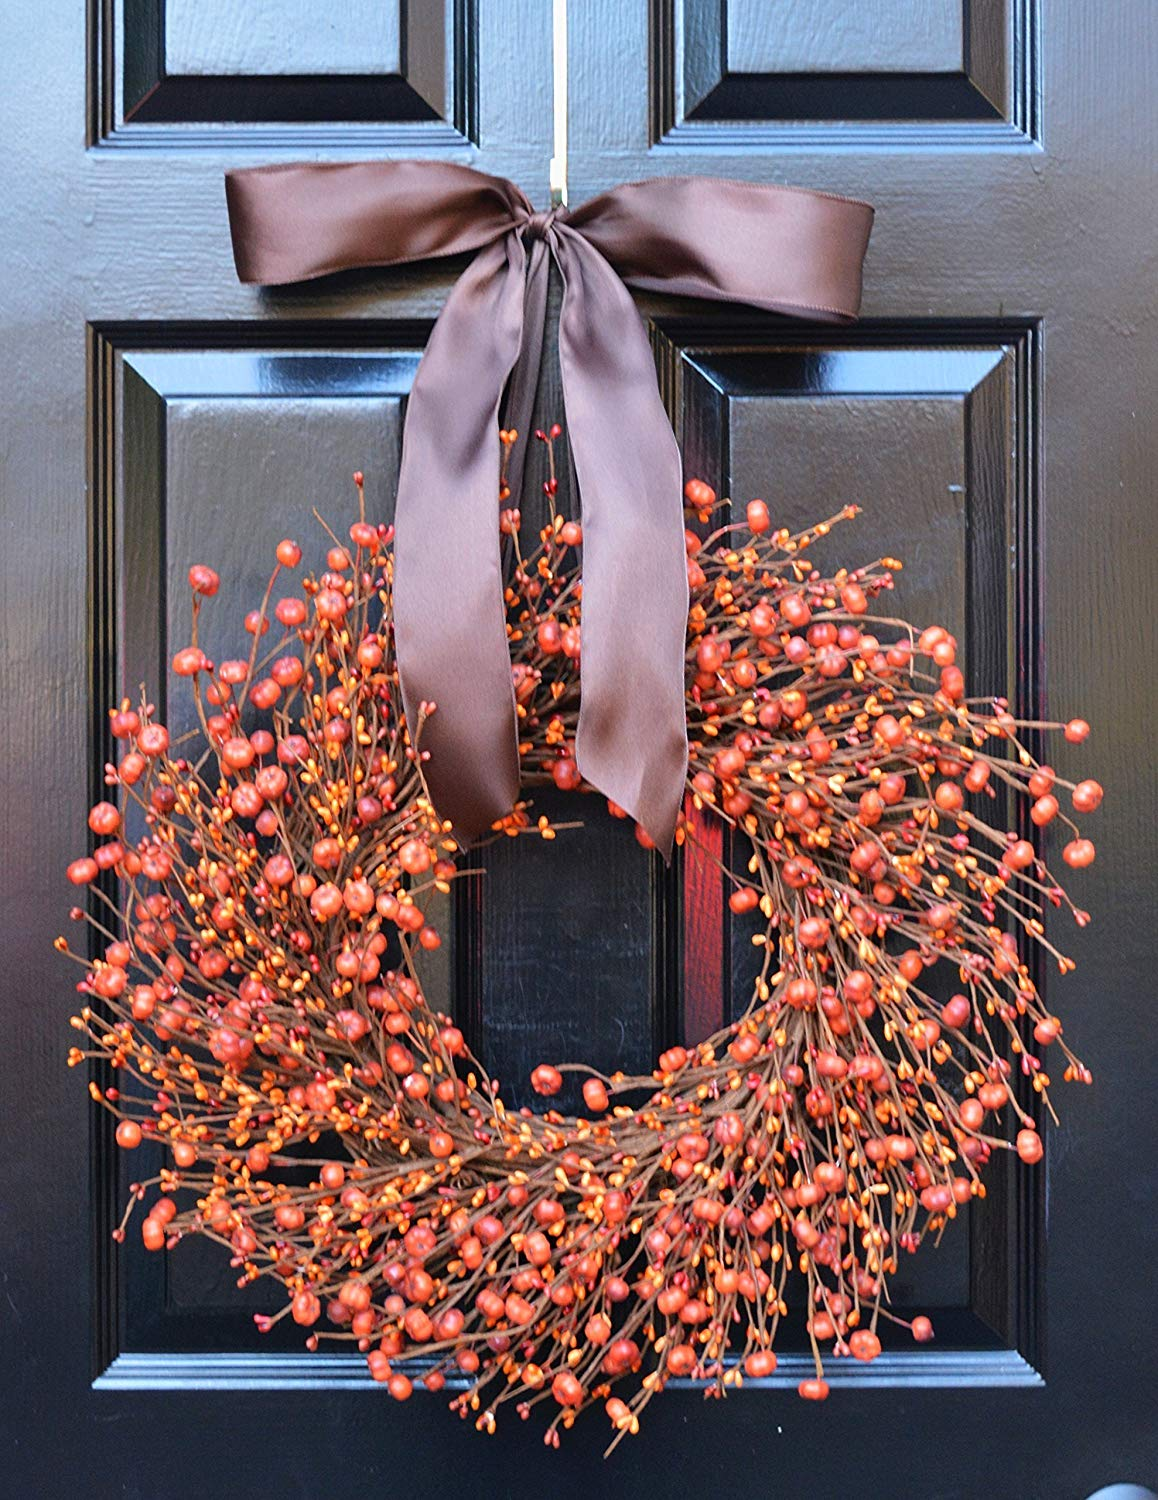 Elegant Holidays Handmade Fall Pumpkin Berry Wreath w/ Bow, Decorative Front Door to Welcome Guests-for Outdoor or Indoor Home Wall Accent Décor- Great for Autumn, Thanksgiving and Halloween- 16-24 in